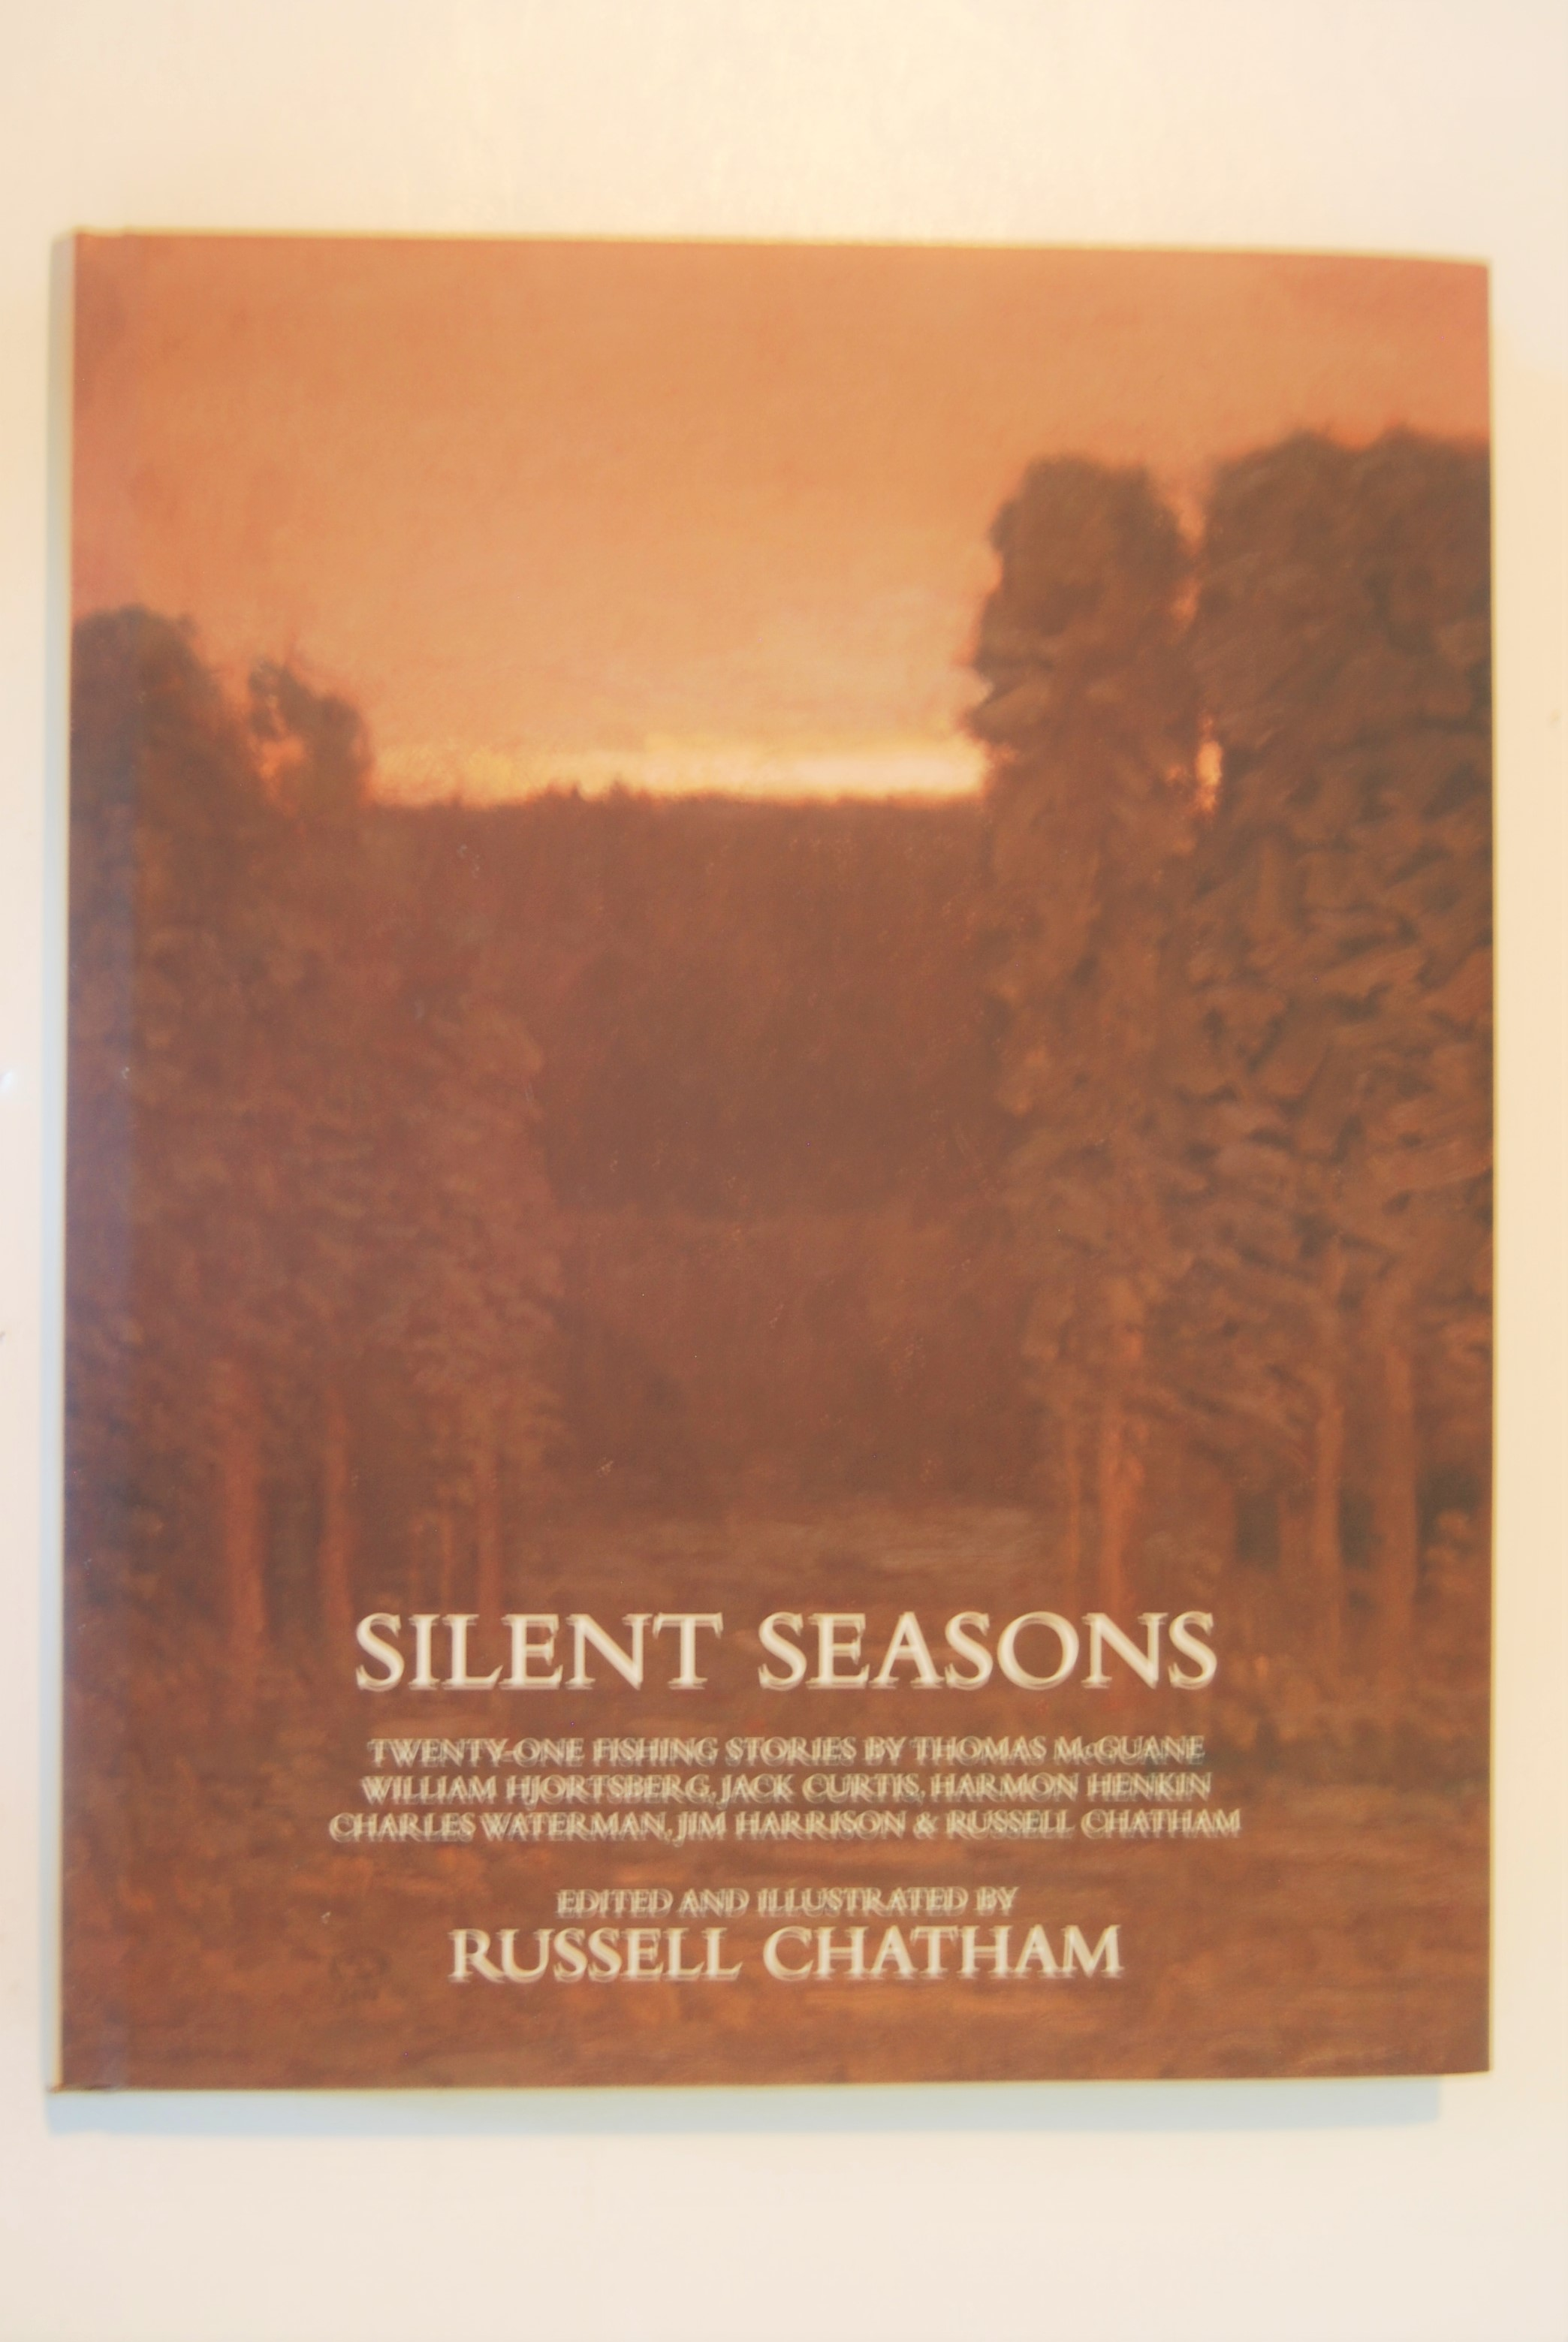 Image for SILENT SEASONS. Twenty-one Fishing Stories by Thomas McGuane, William Hjortsberg, Jack Curtis, Harmon Henkin, Charles Waterman, Jim Harrison & Russell Chatham. Edited and Illustrated by Russell Chatham.